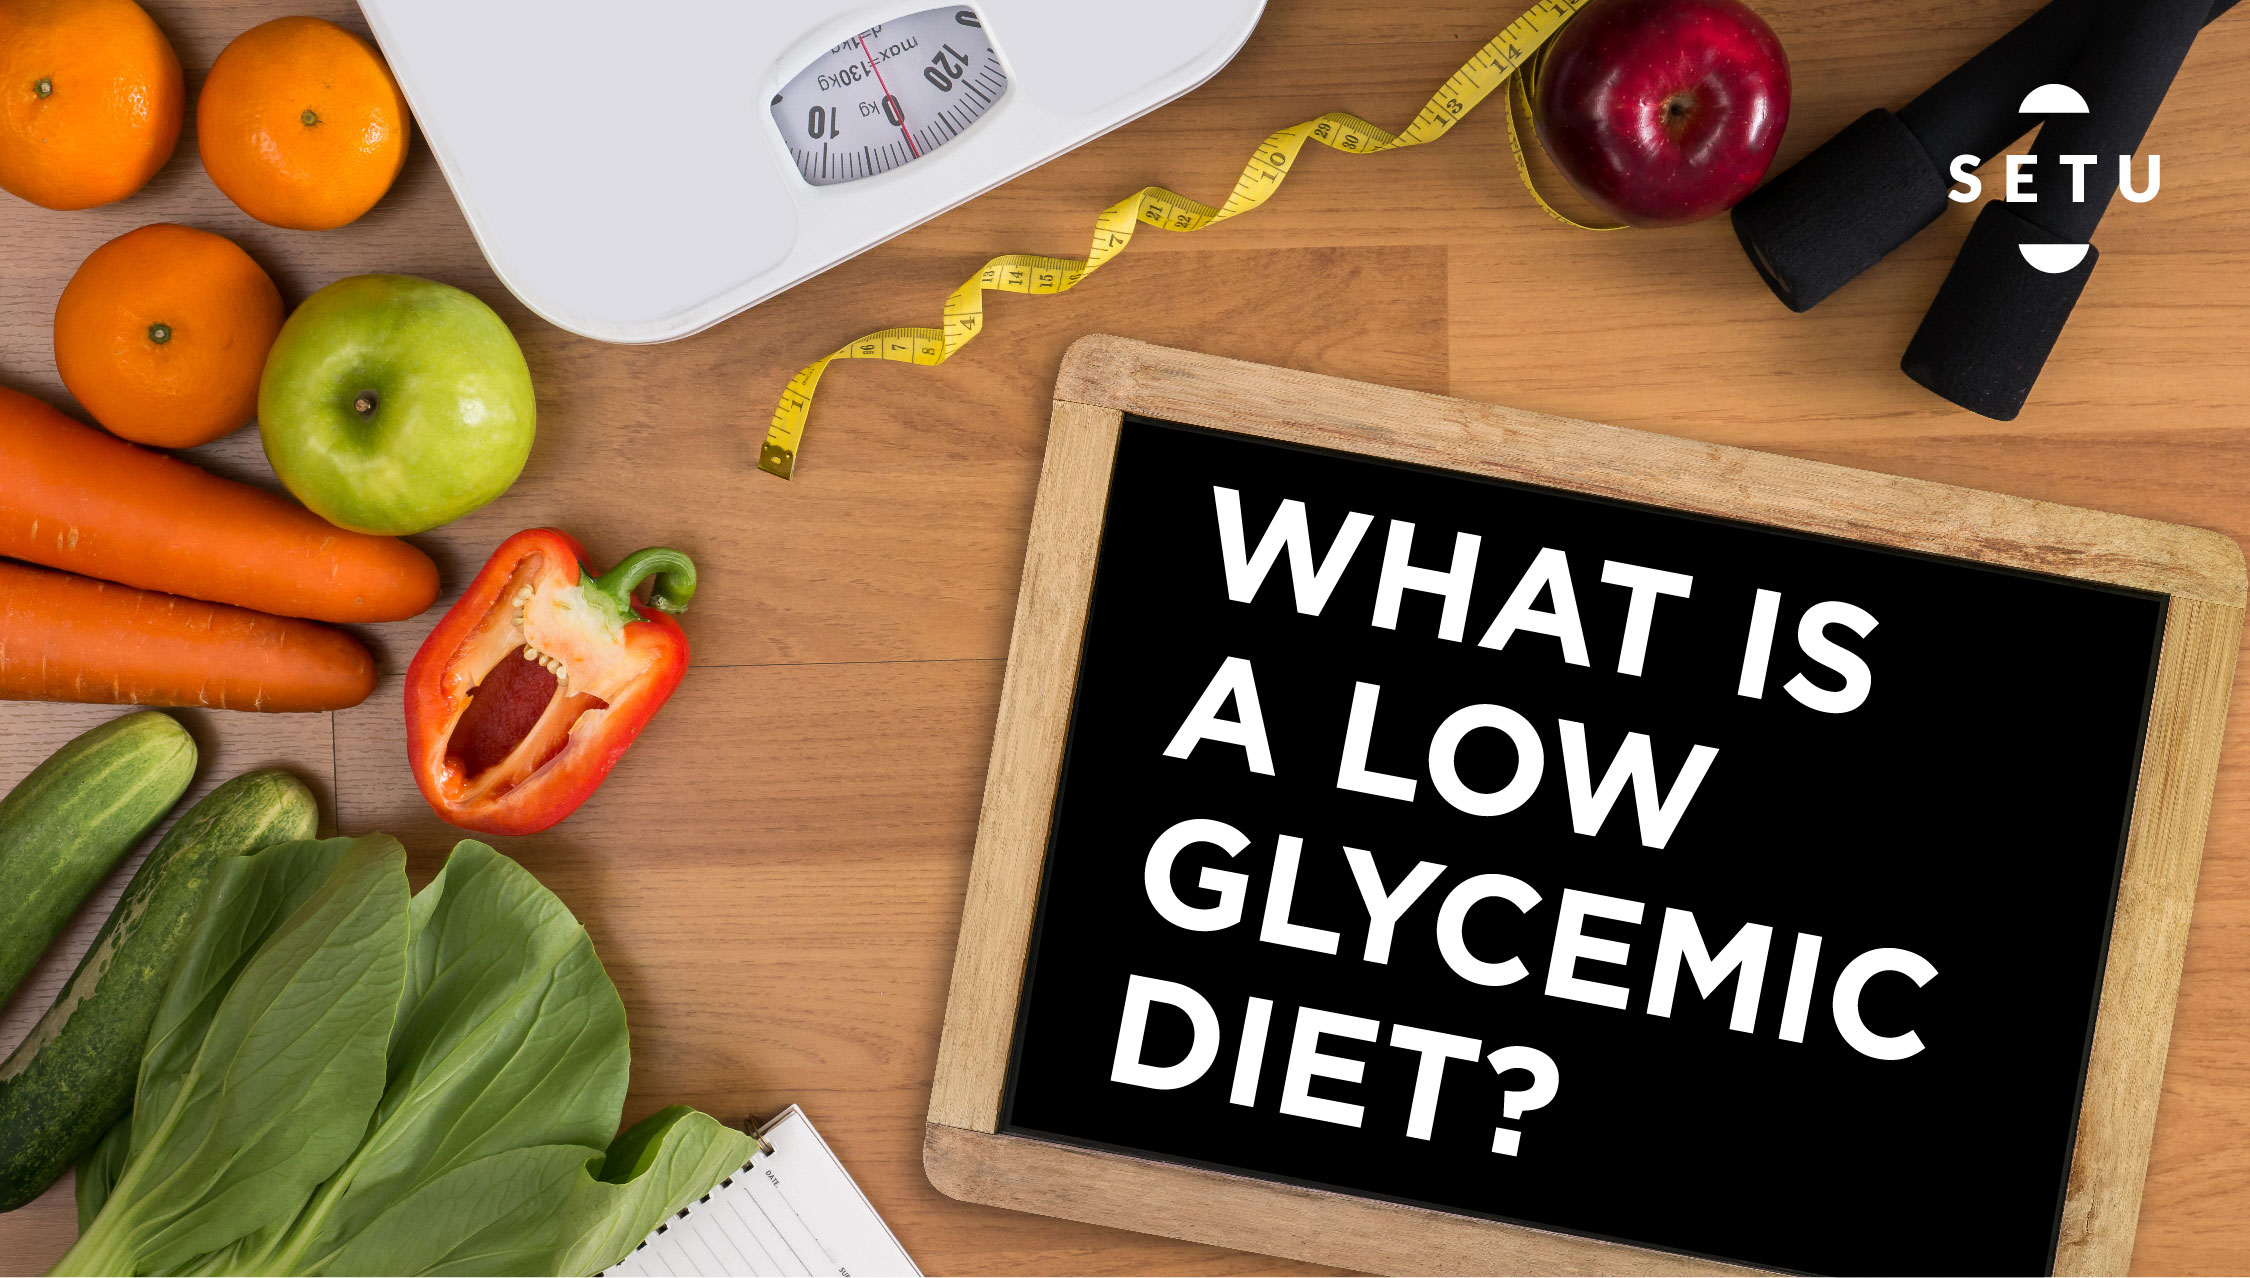 What is a Low Glycemic Diet?